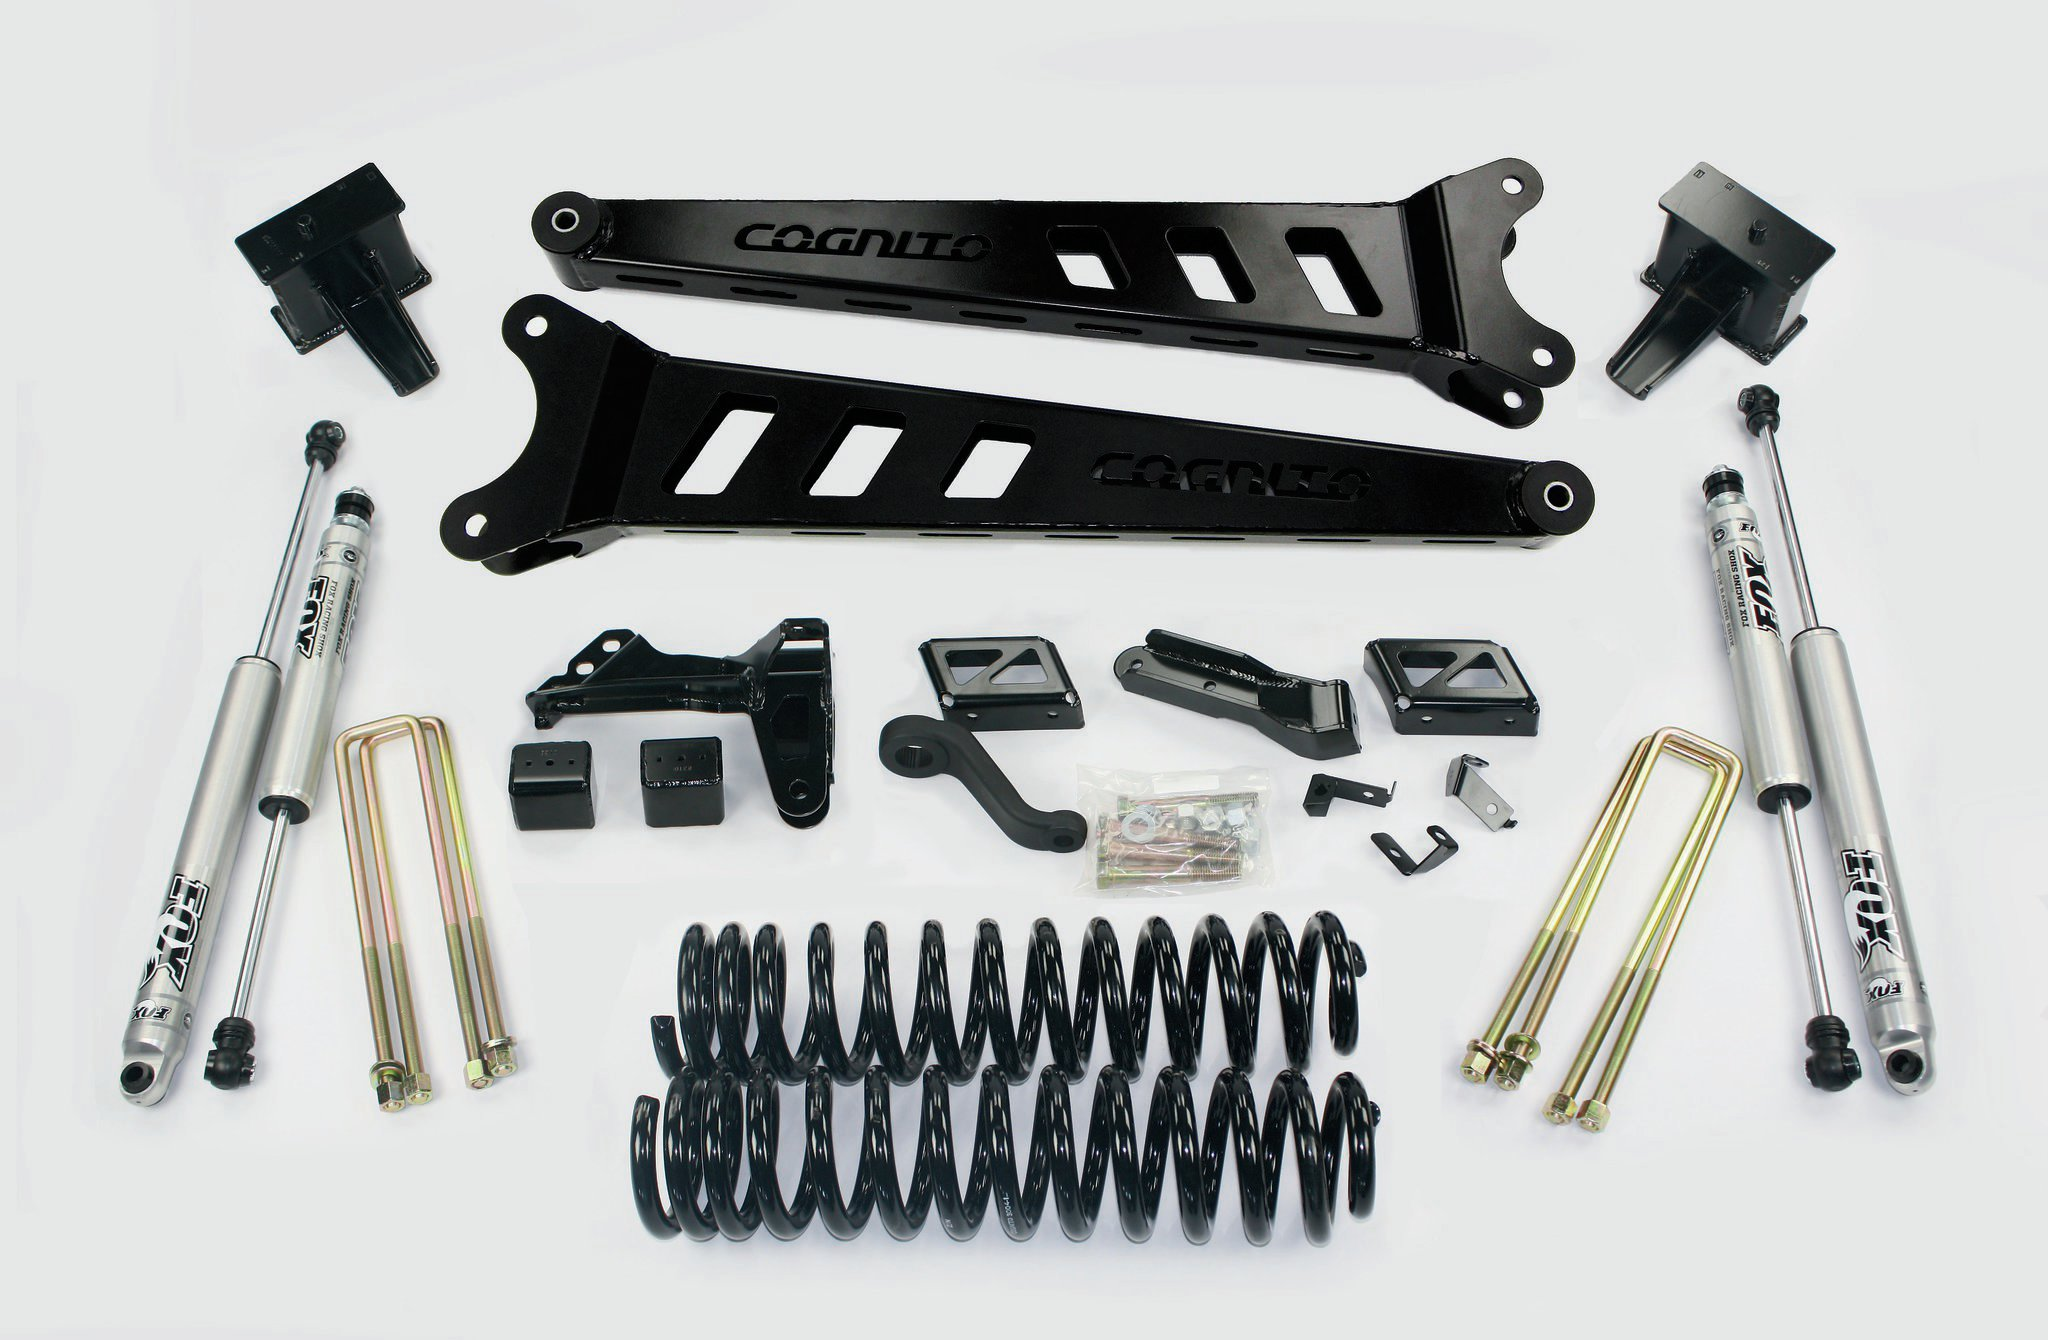 Cognito Motorsports Ford Super Duty Suspension Packages Photo 76002000